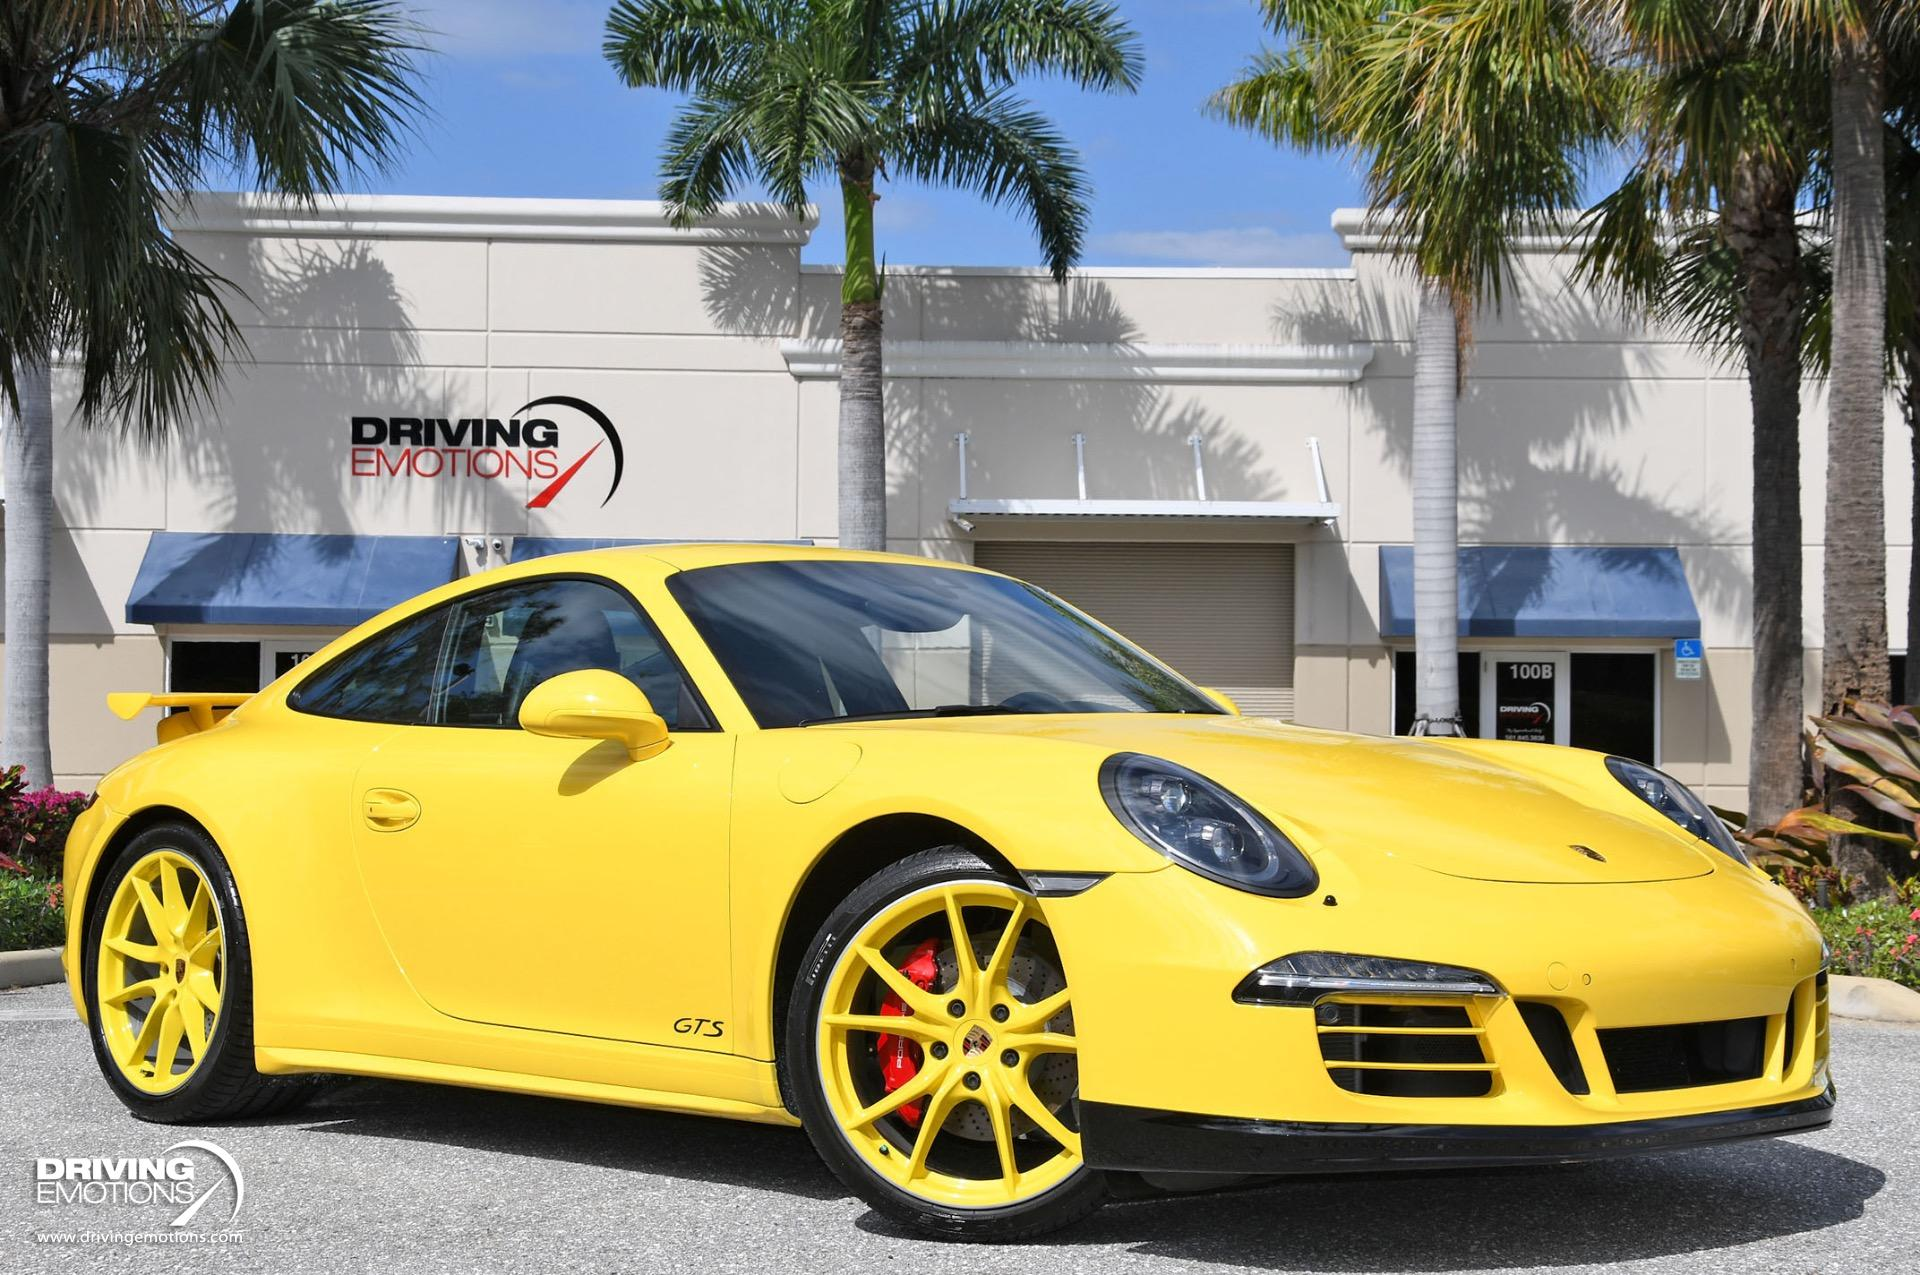 Used 2016 Porsche 911 Carrera GTS Carrera GTS AeroKit Cup! 7-Speed Manual! $132k MSRP!! | Lake Park, FL